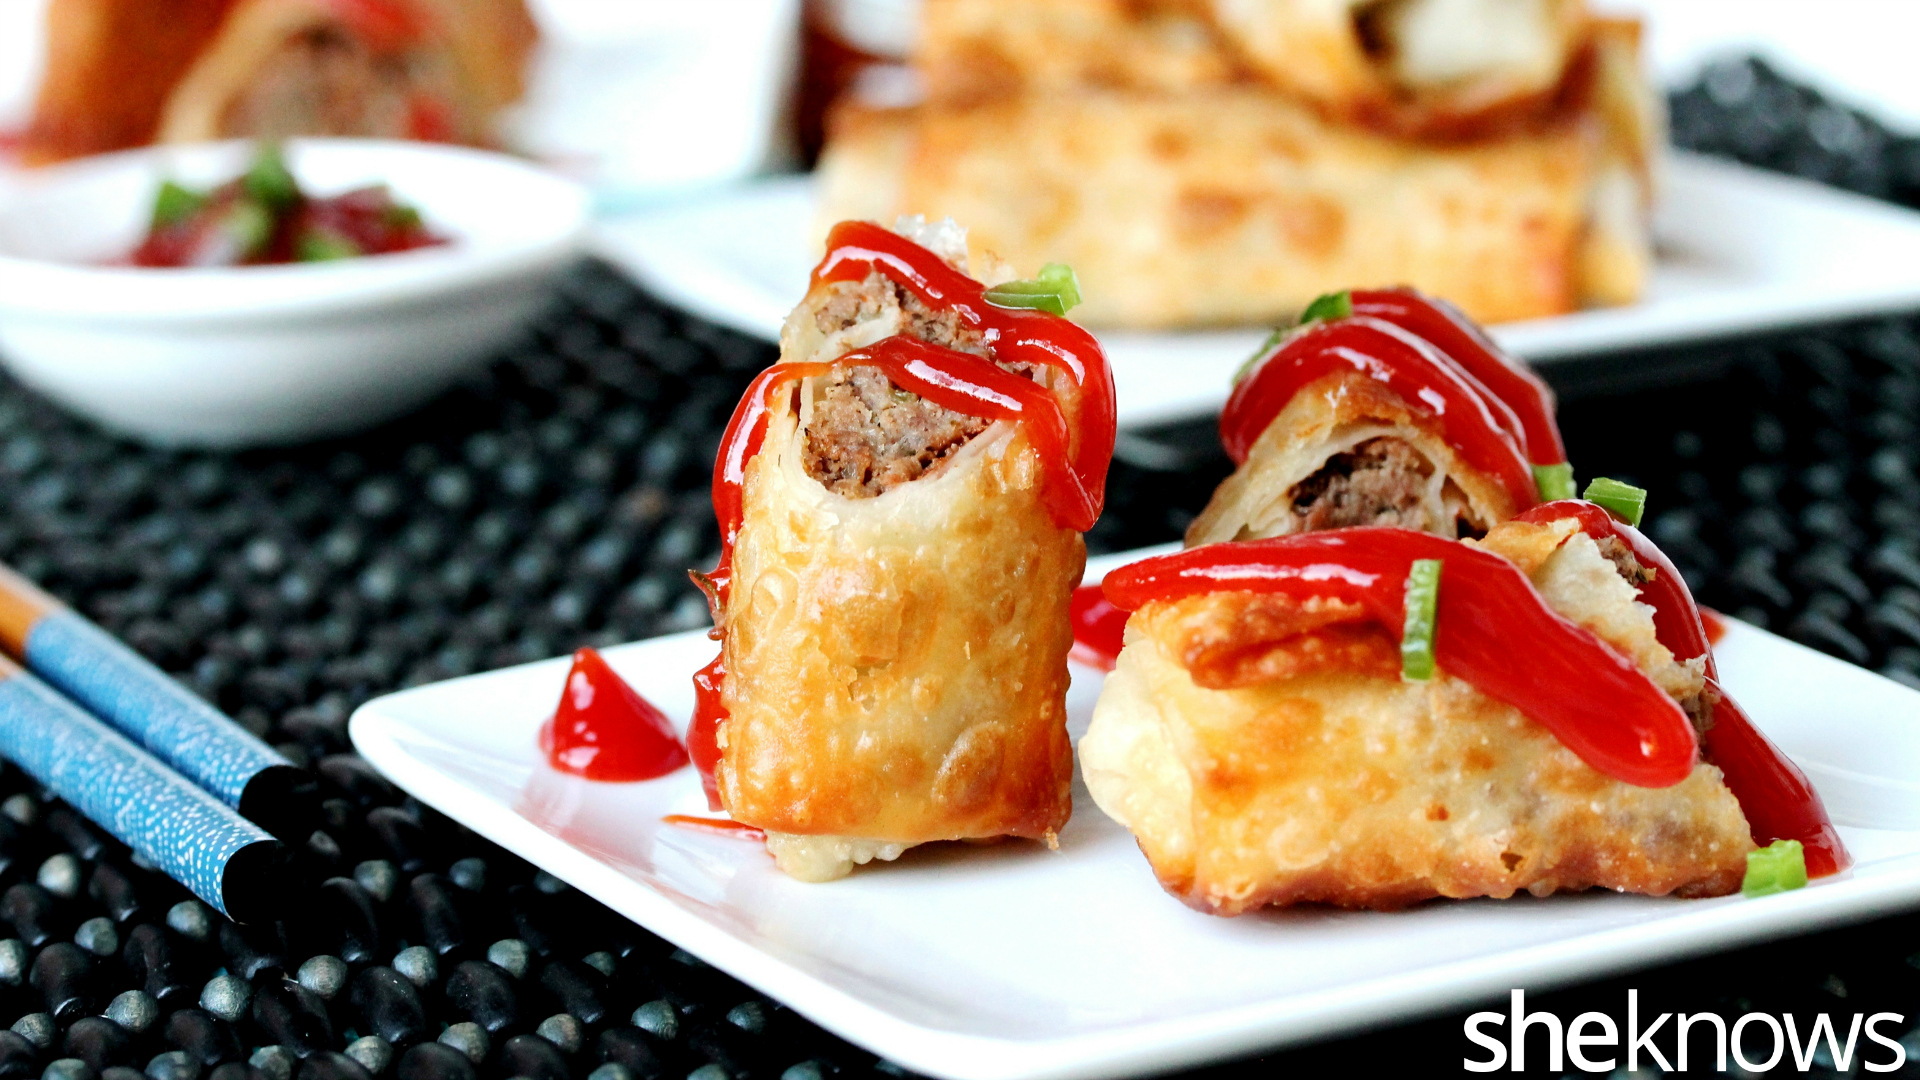 meatloaf egg rolls with ketchup